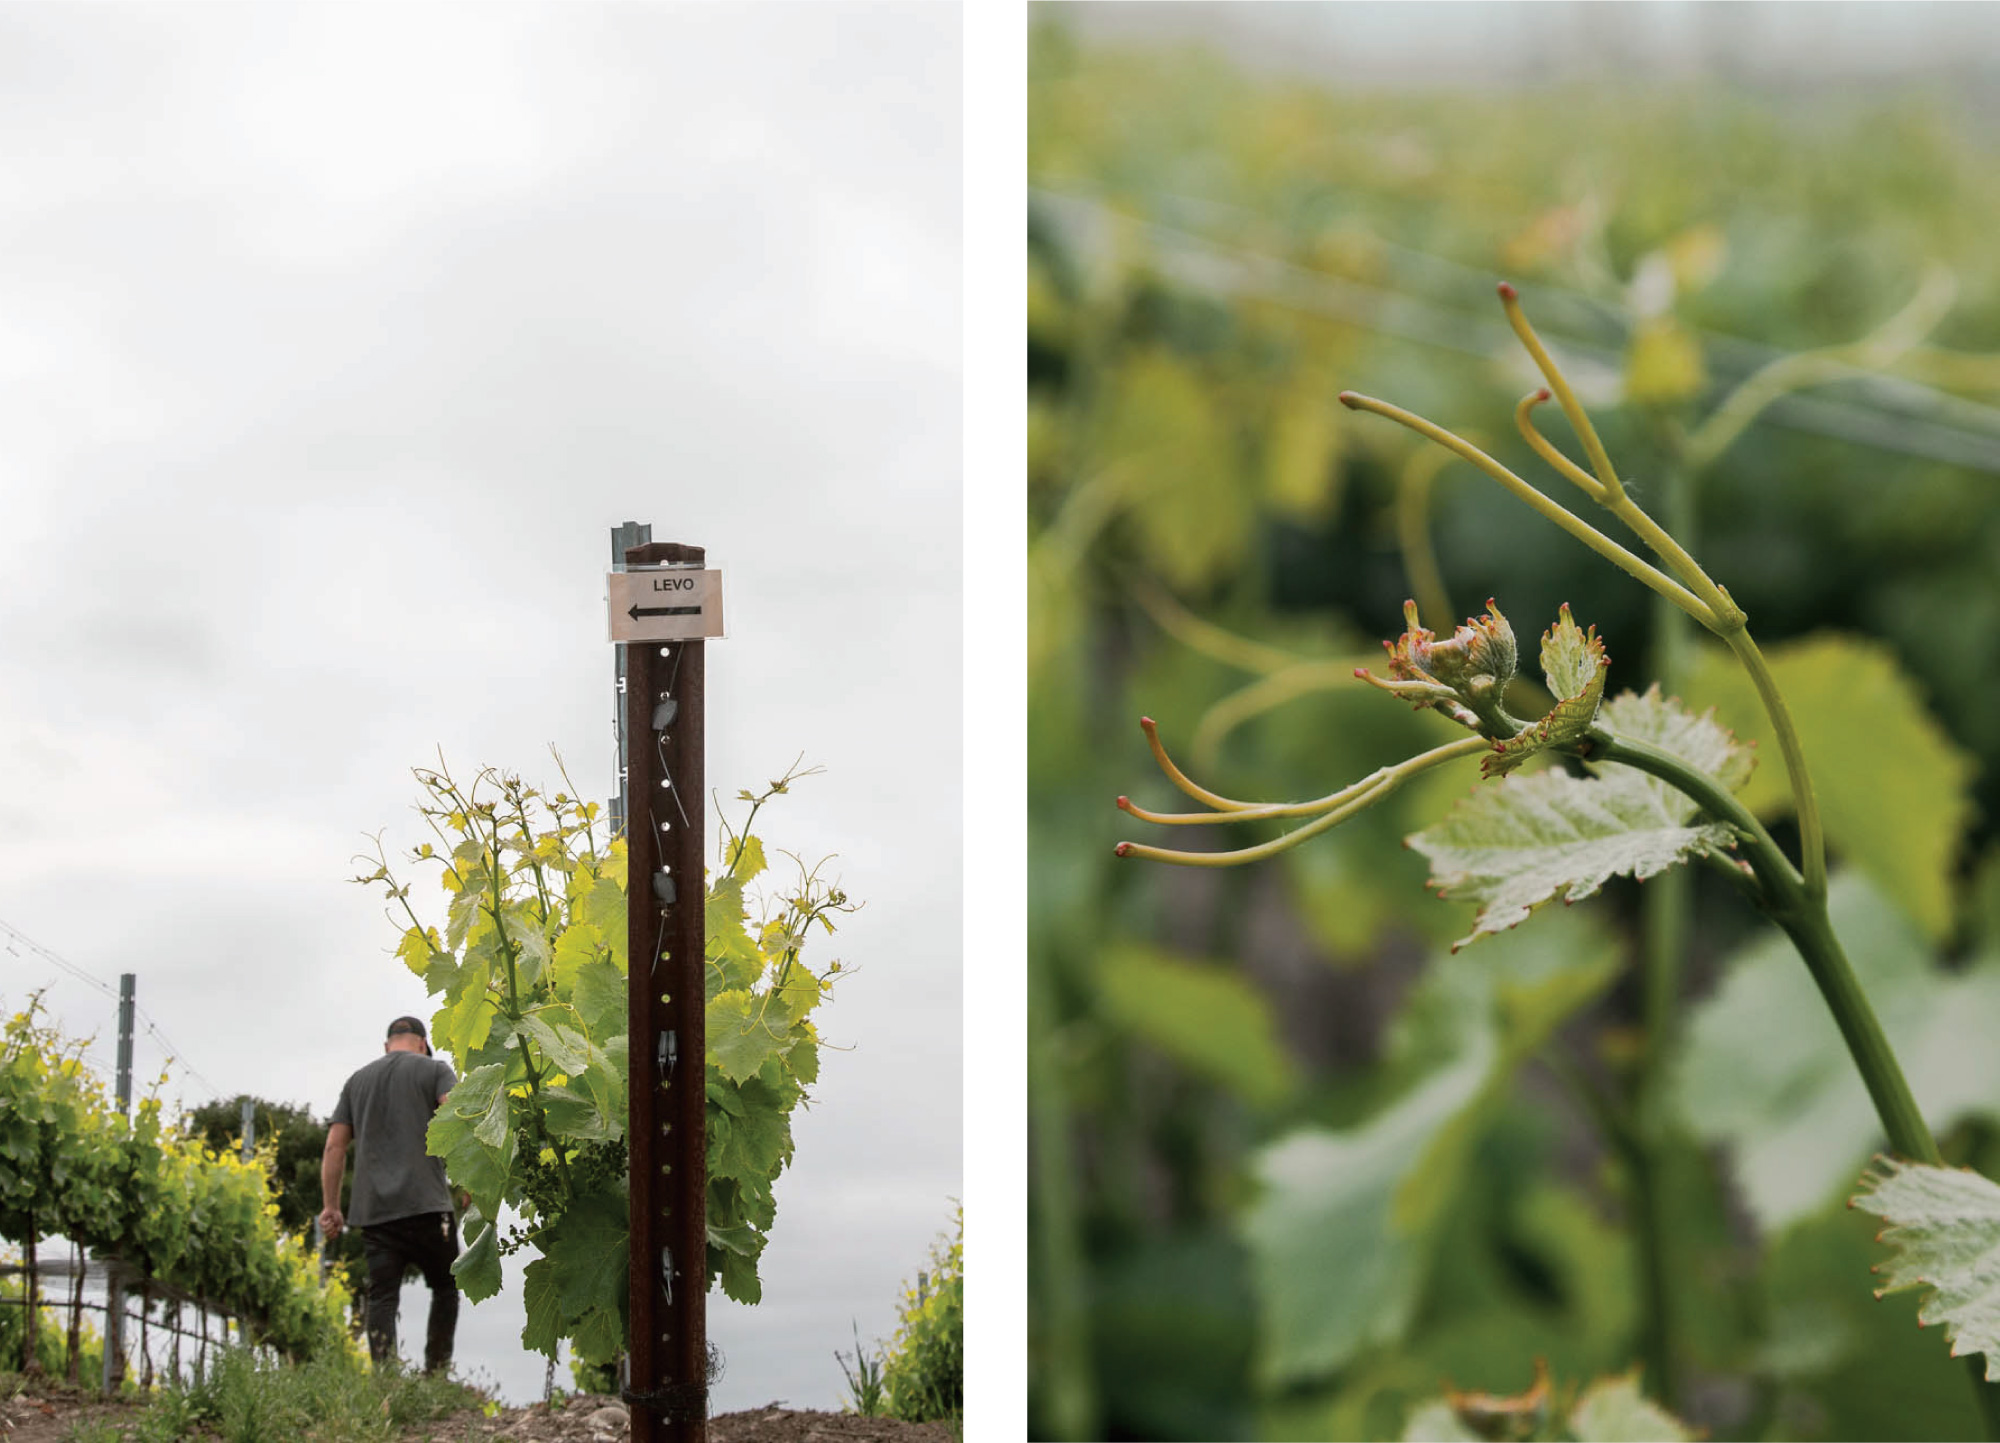 Vineyard Photography for Levo Wine in Santa Barbara County, California